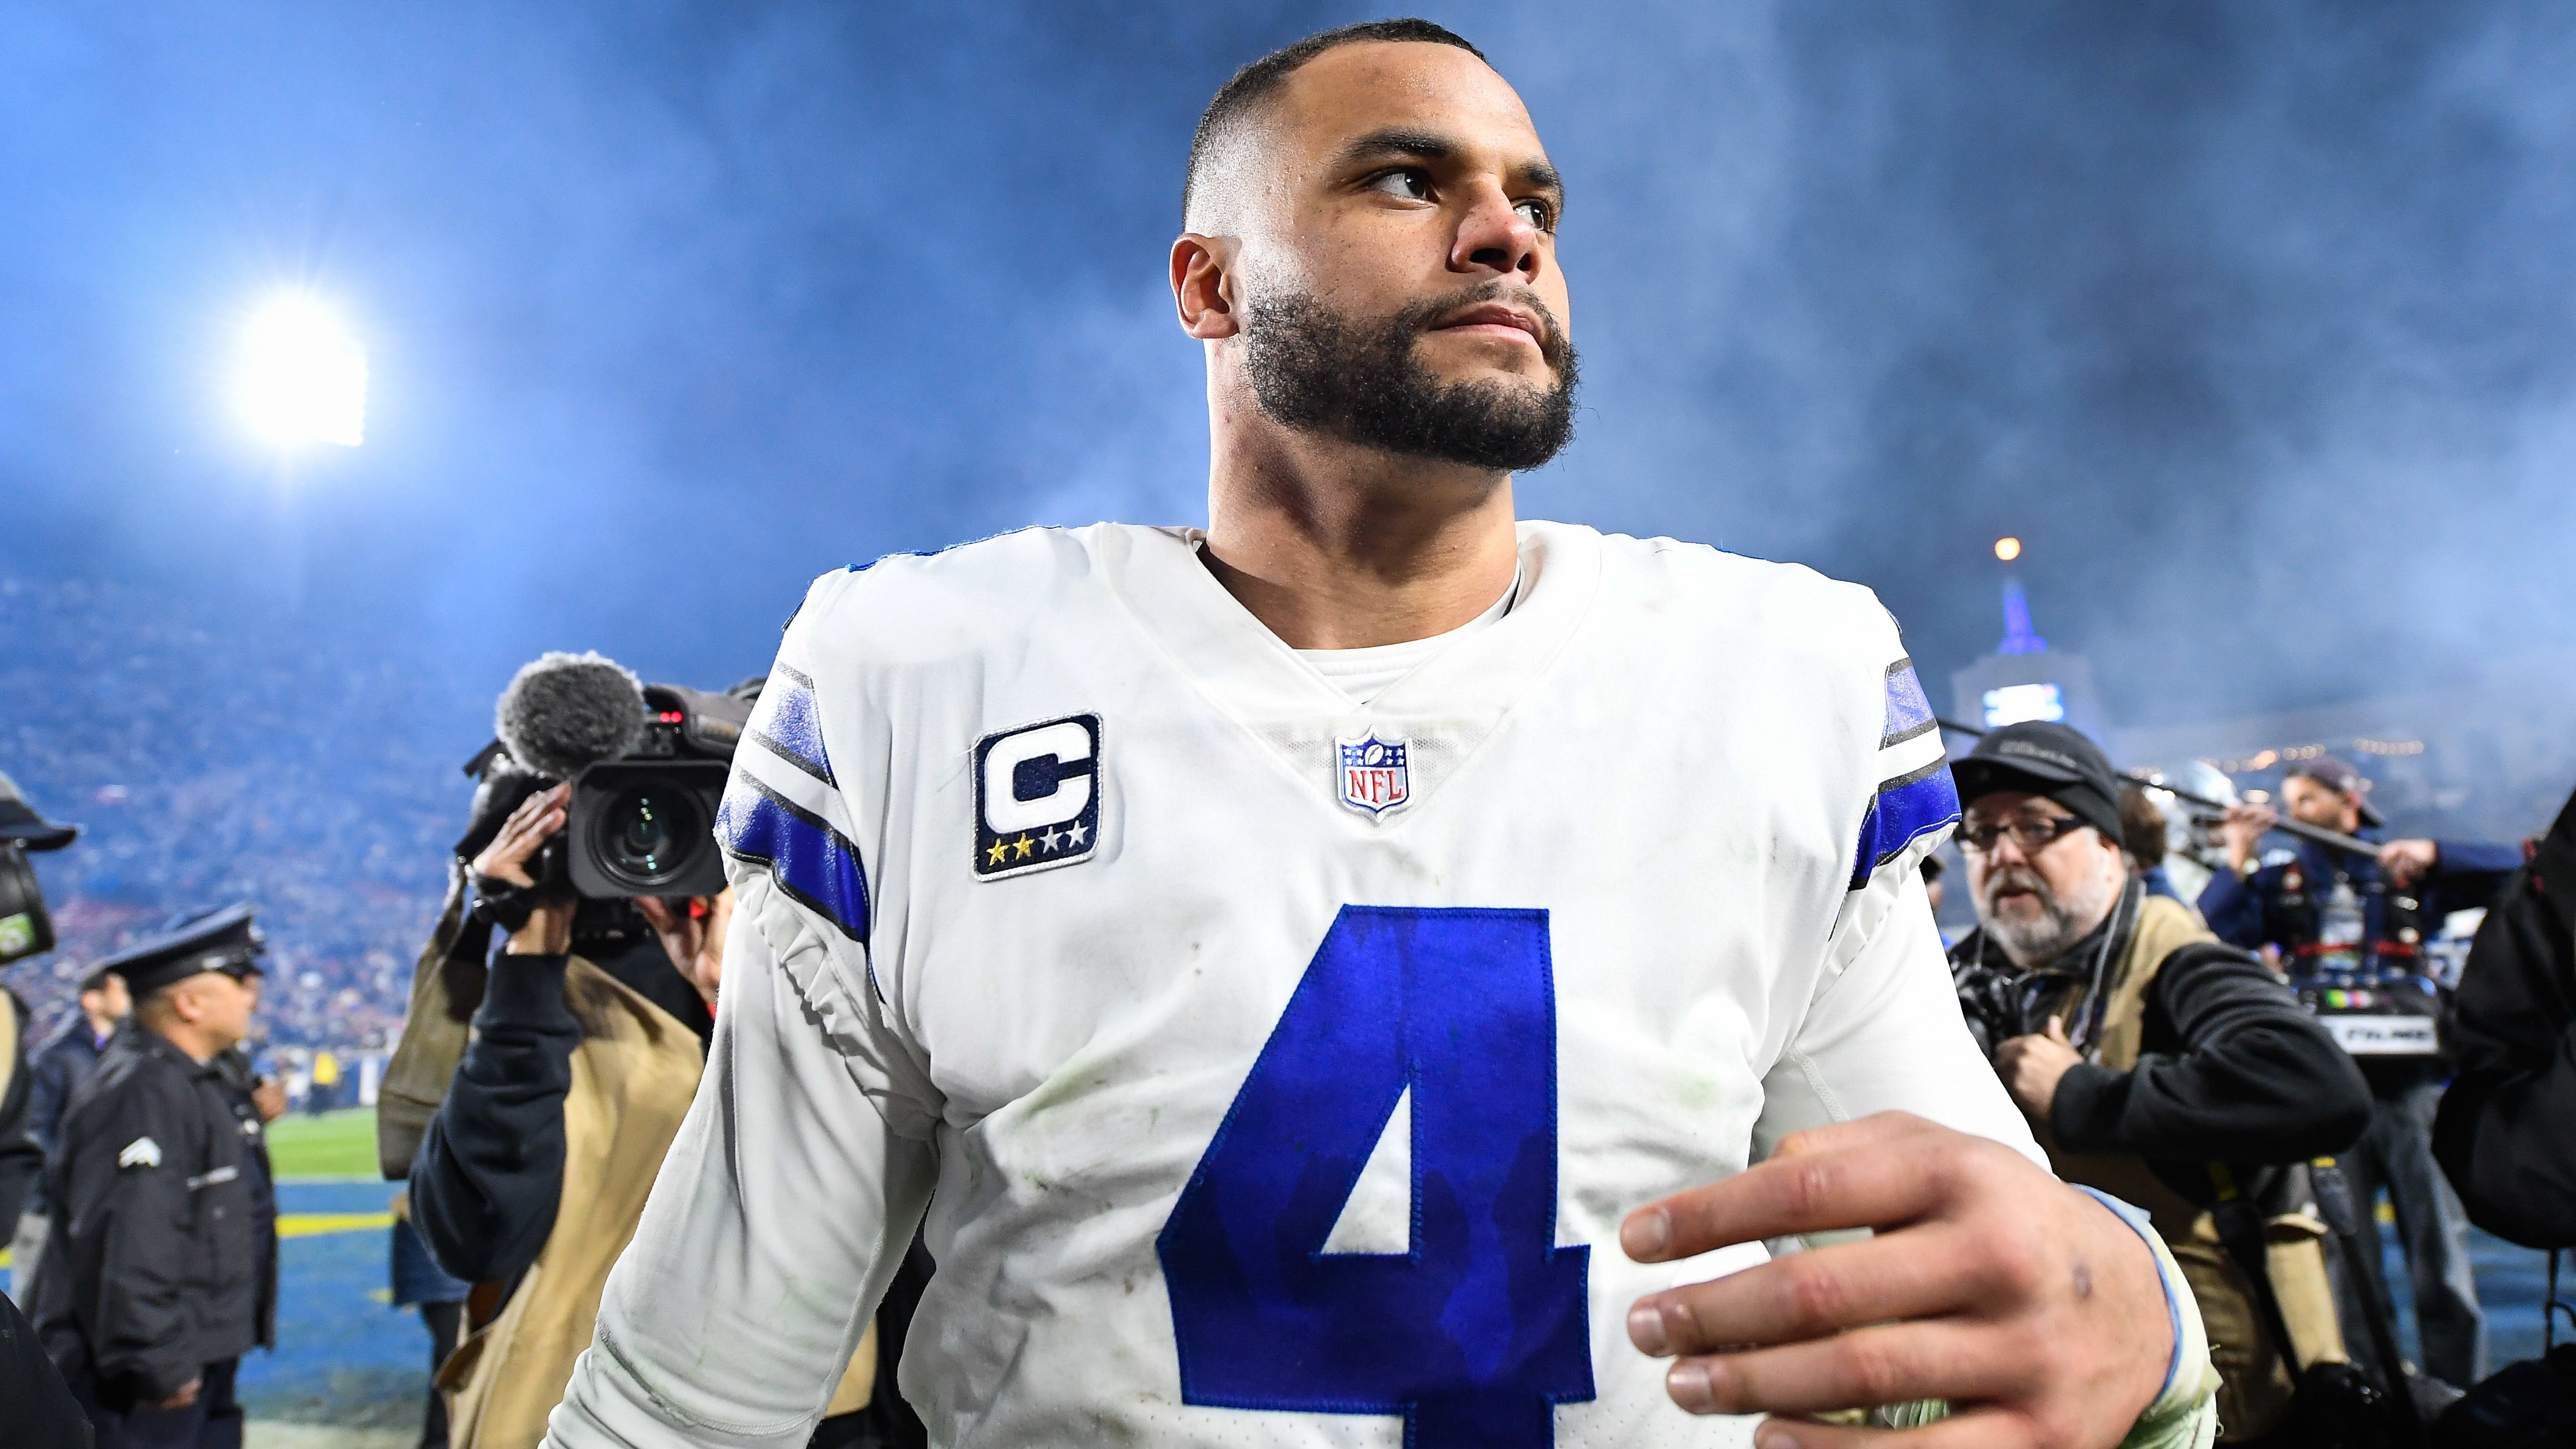 LOS ANGELES, CA - JANUARY 12: Quarterback Dak Prescott #4 of the Dallas Cowboys walks off the field after losing the NFC Divisional Round playoff game to the Los Angeles Rams at Los Angeles Memorial Coliseum on January 12, 2019 in Los Angeles, California. (Photo by Kevork Djansezian/Getty Images)